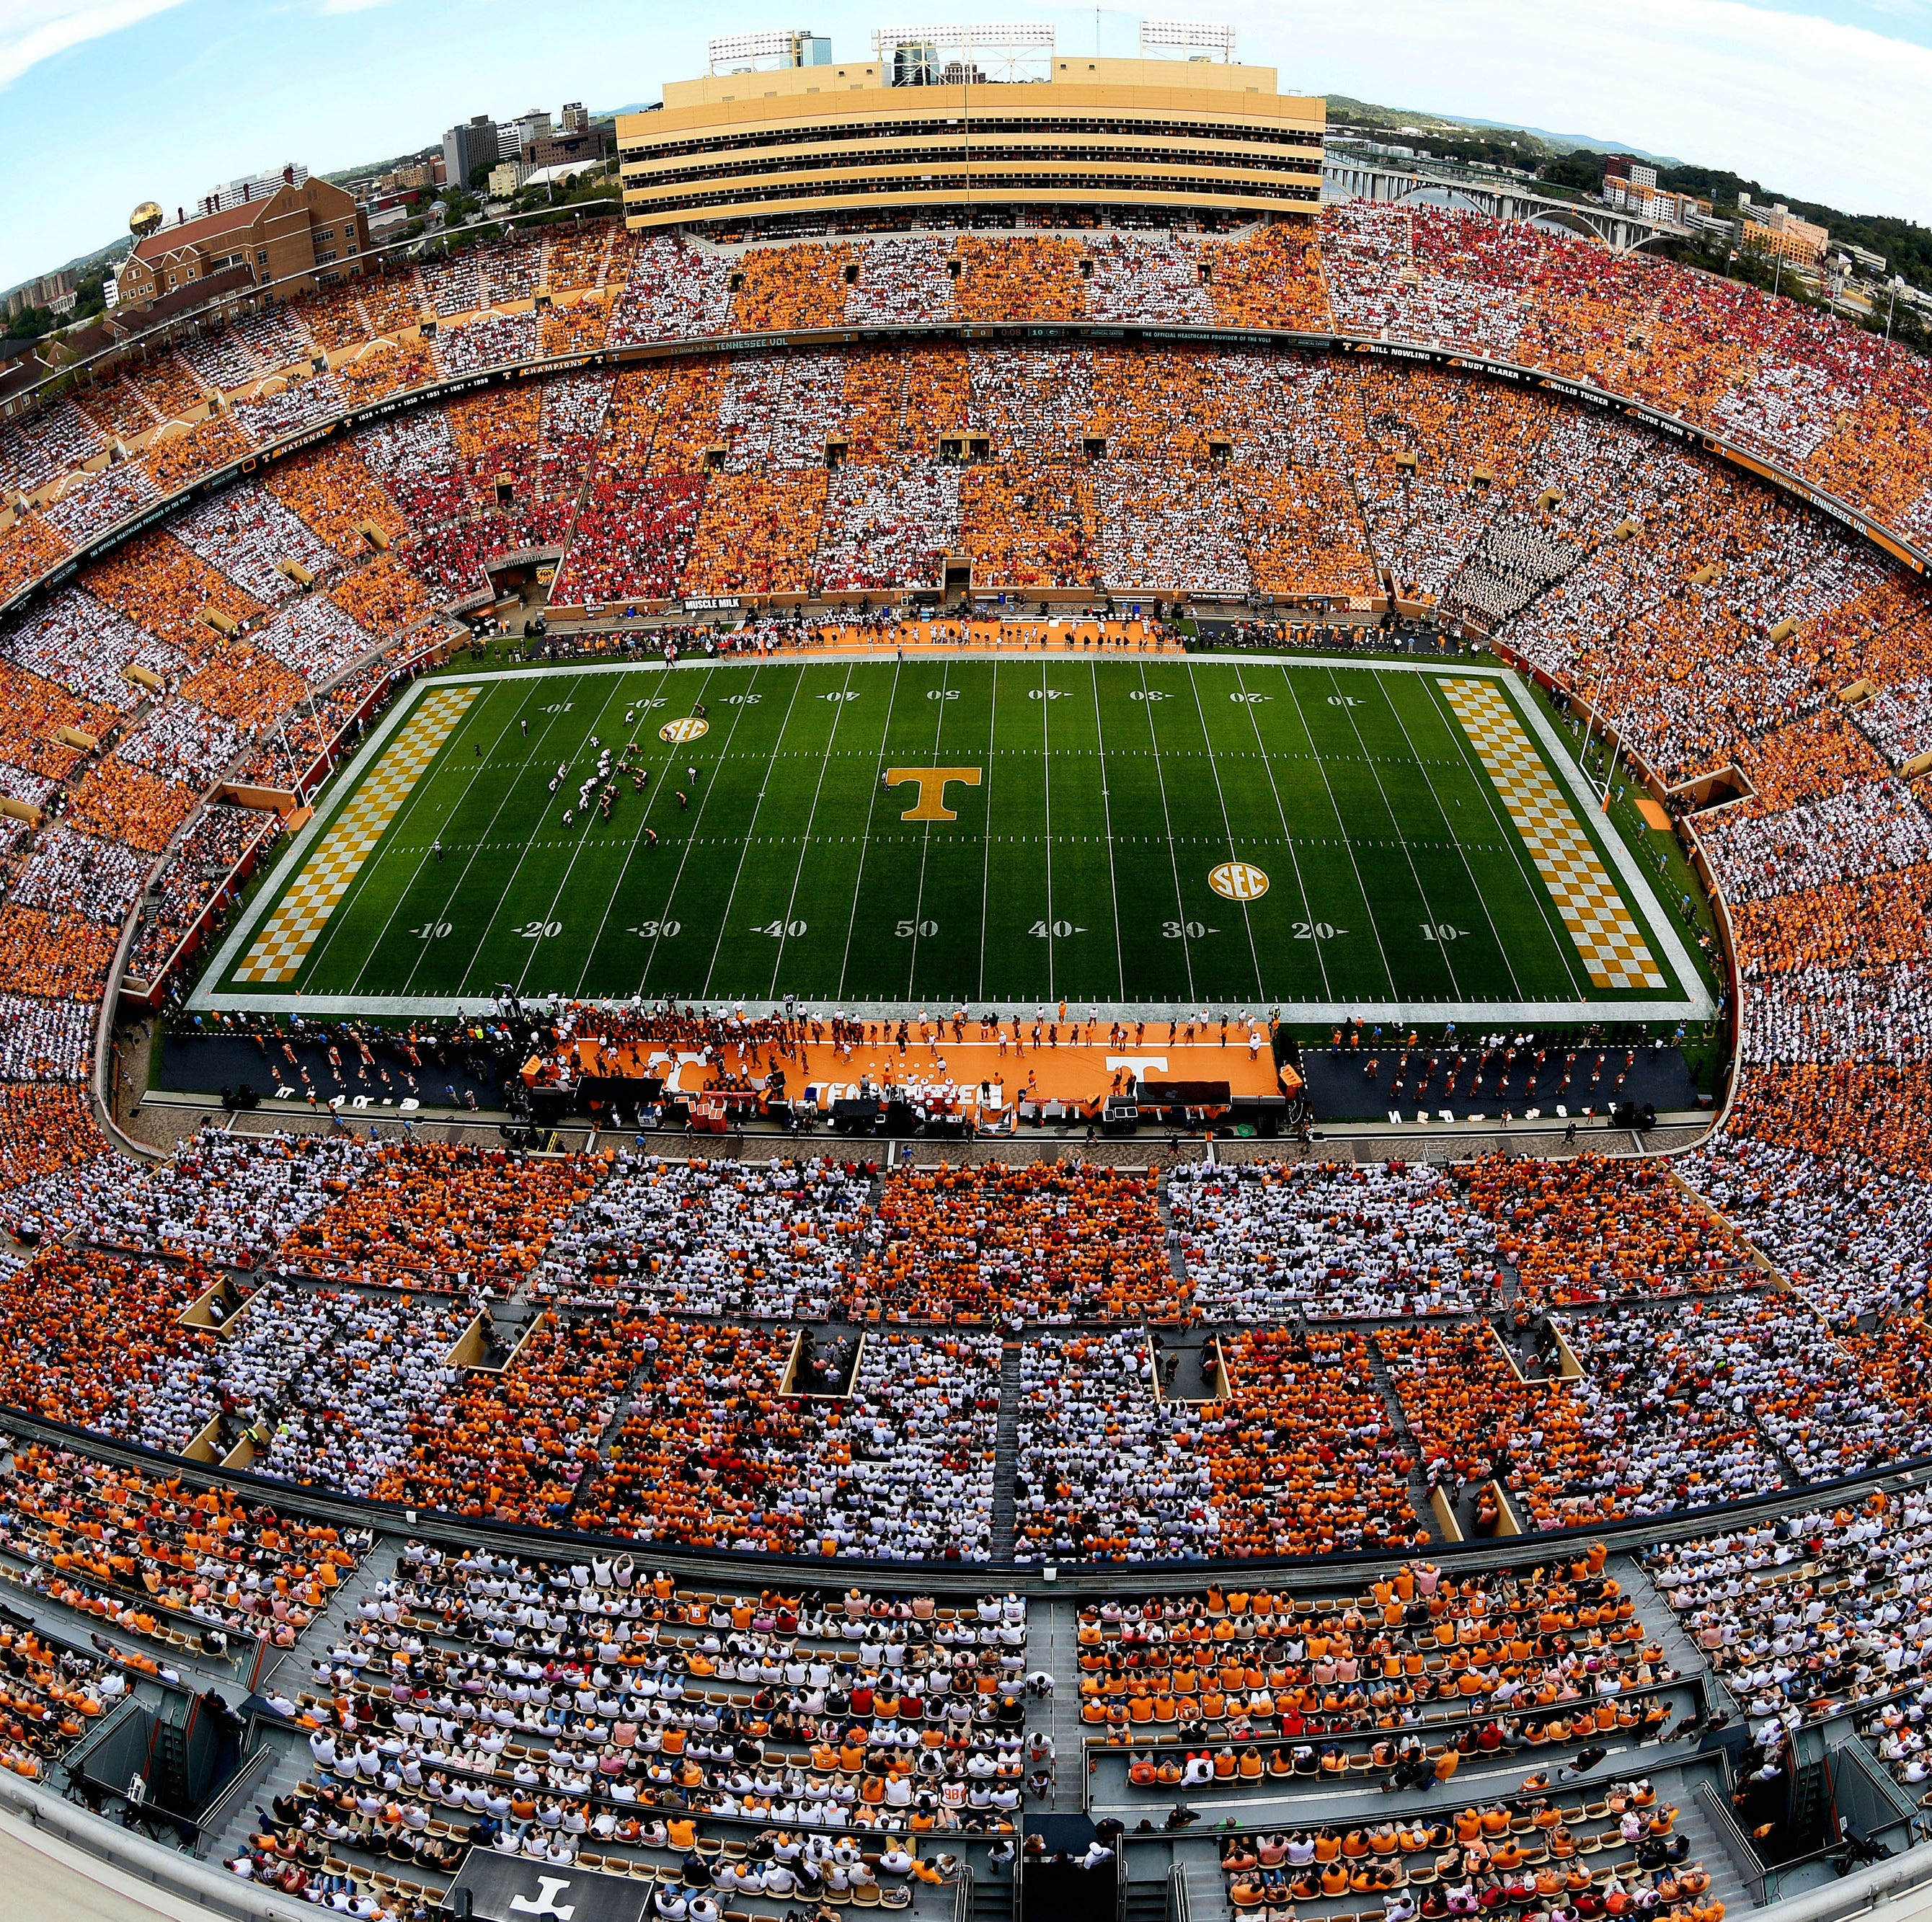 Cleveland Browns hire UT Vols football support staffer to coach tight ends, per report